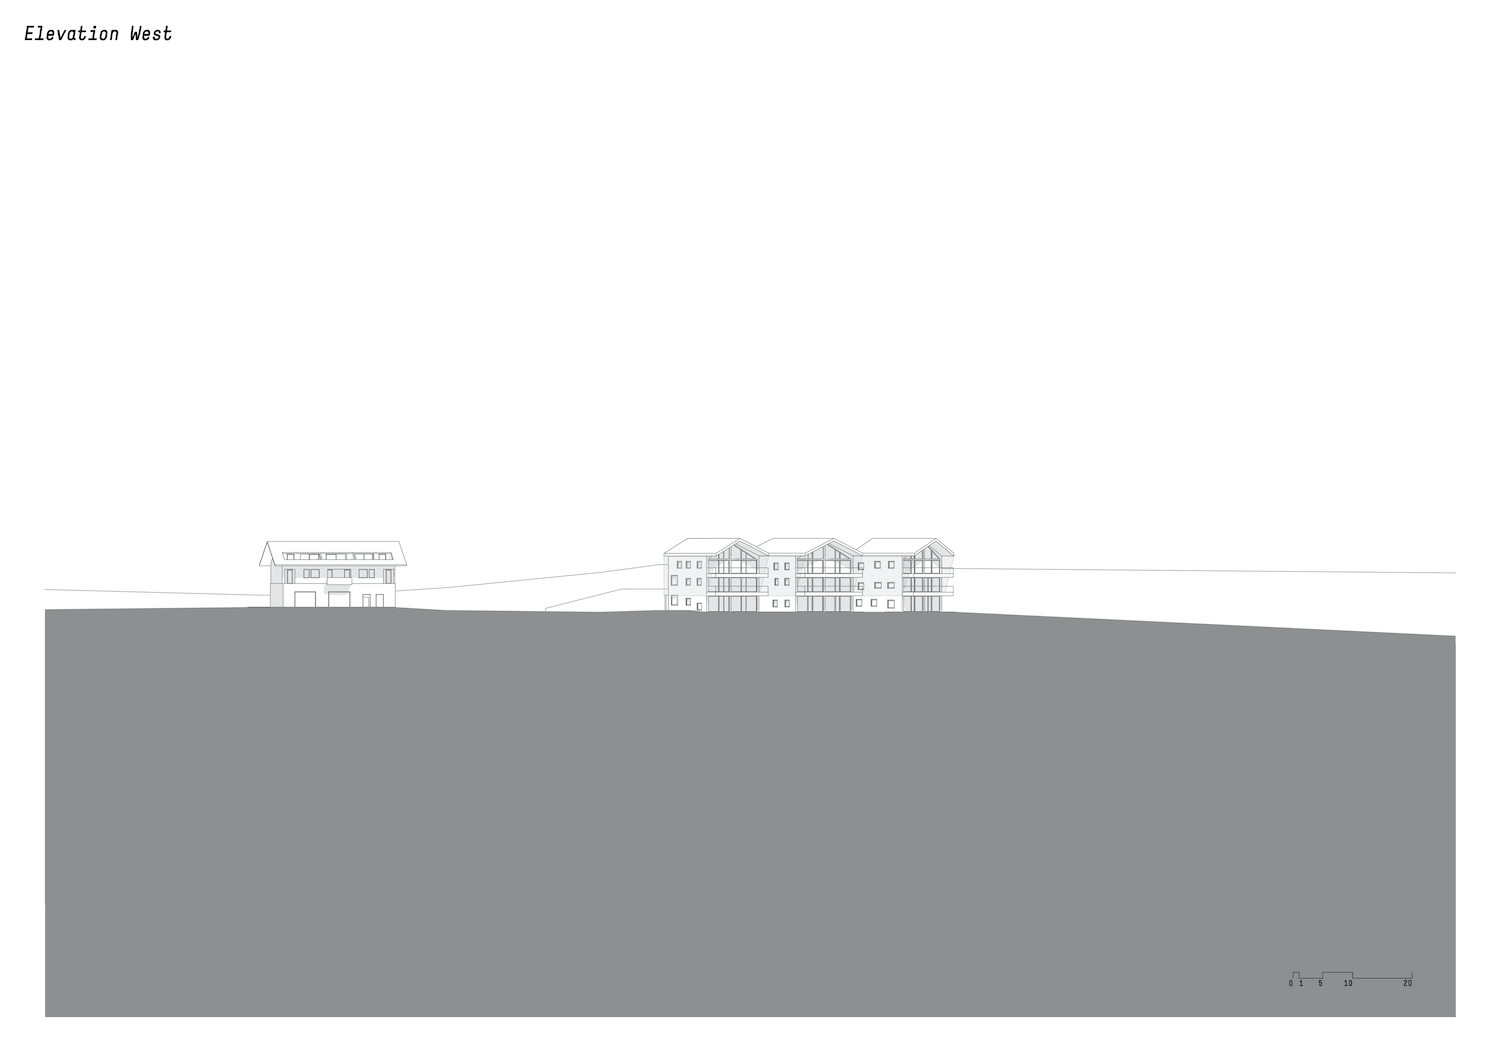 West Elevation drawing